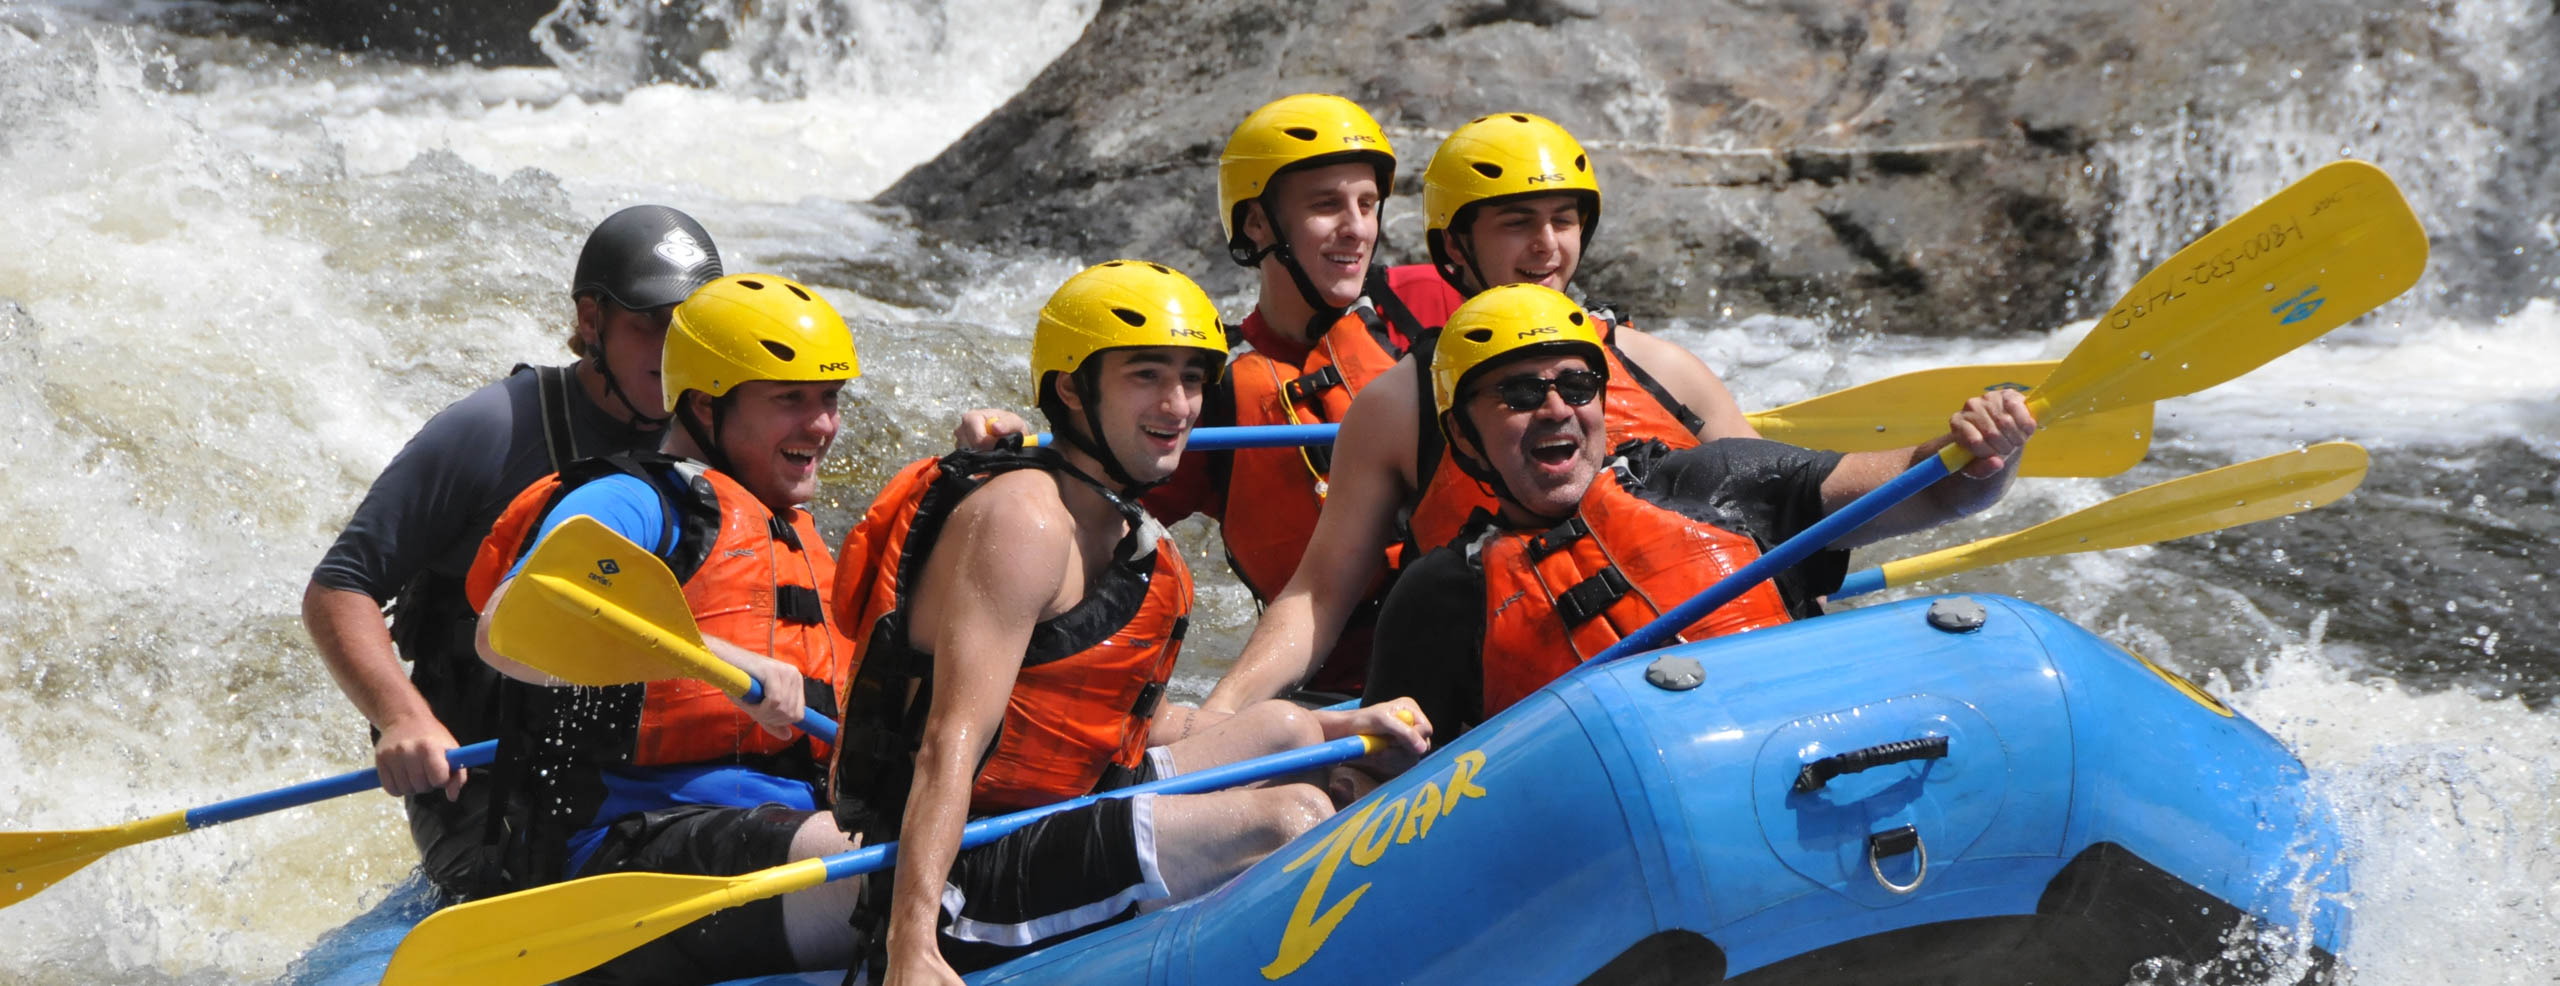 Group of people rafting down the Dryway river